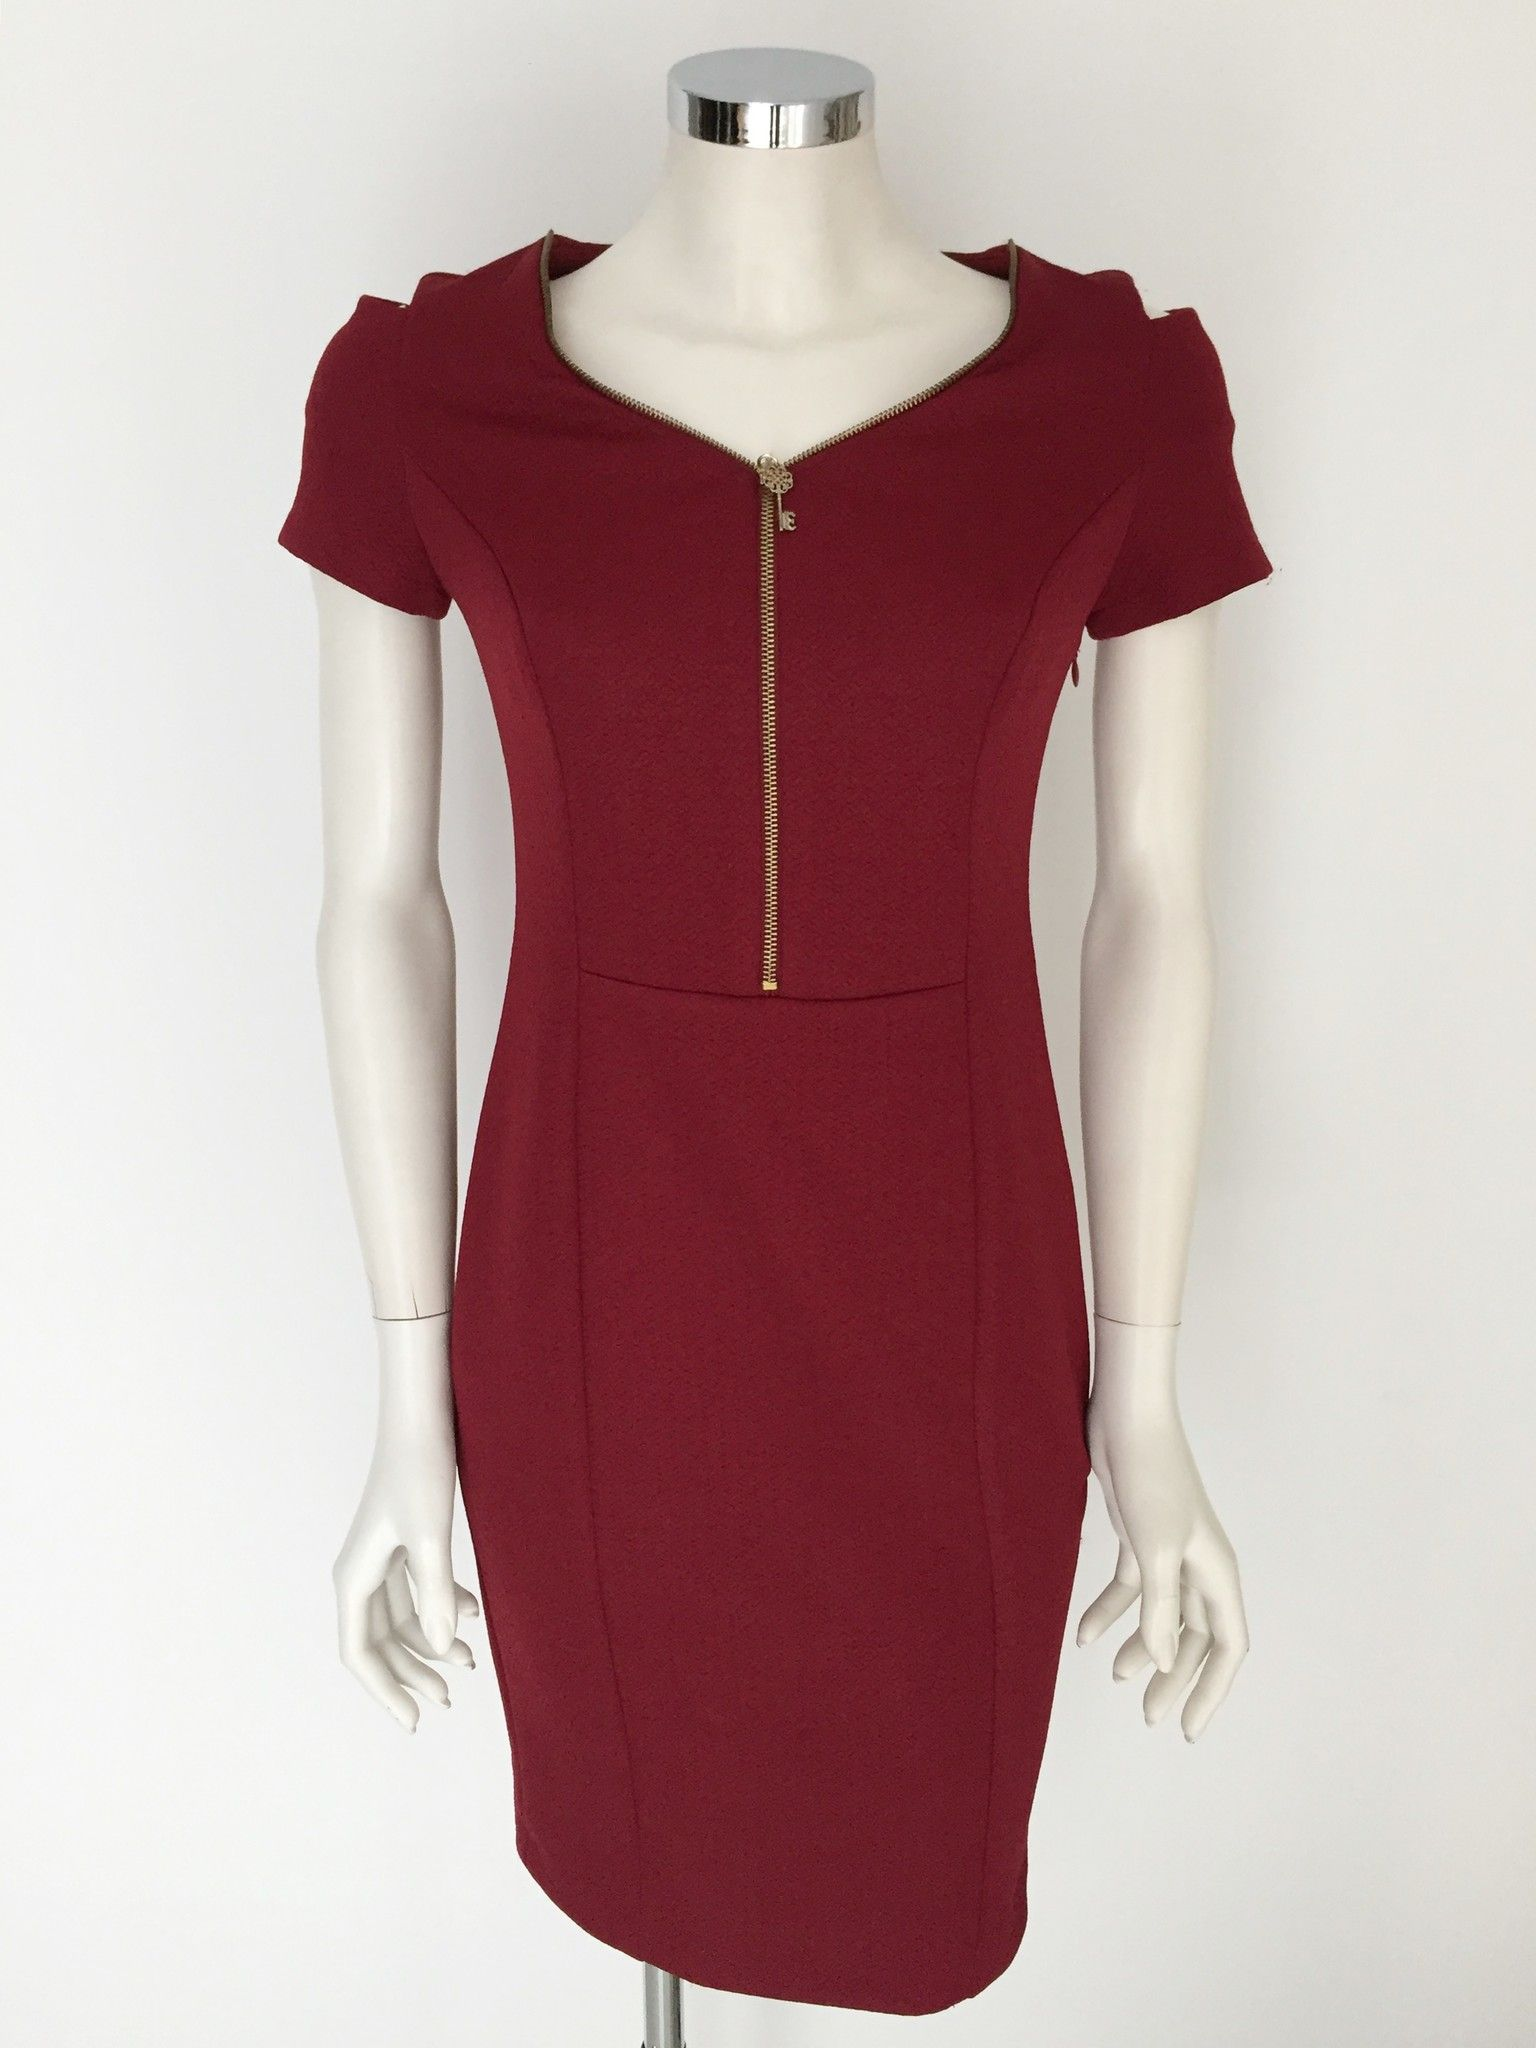 LadyBug Short sleeve dress with Golden Zipper Cod.641D